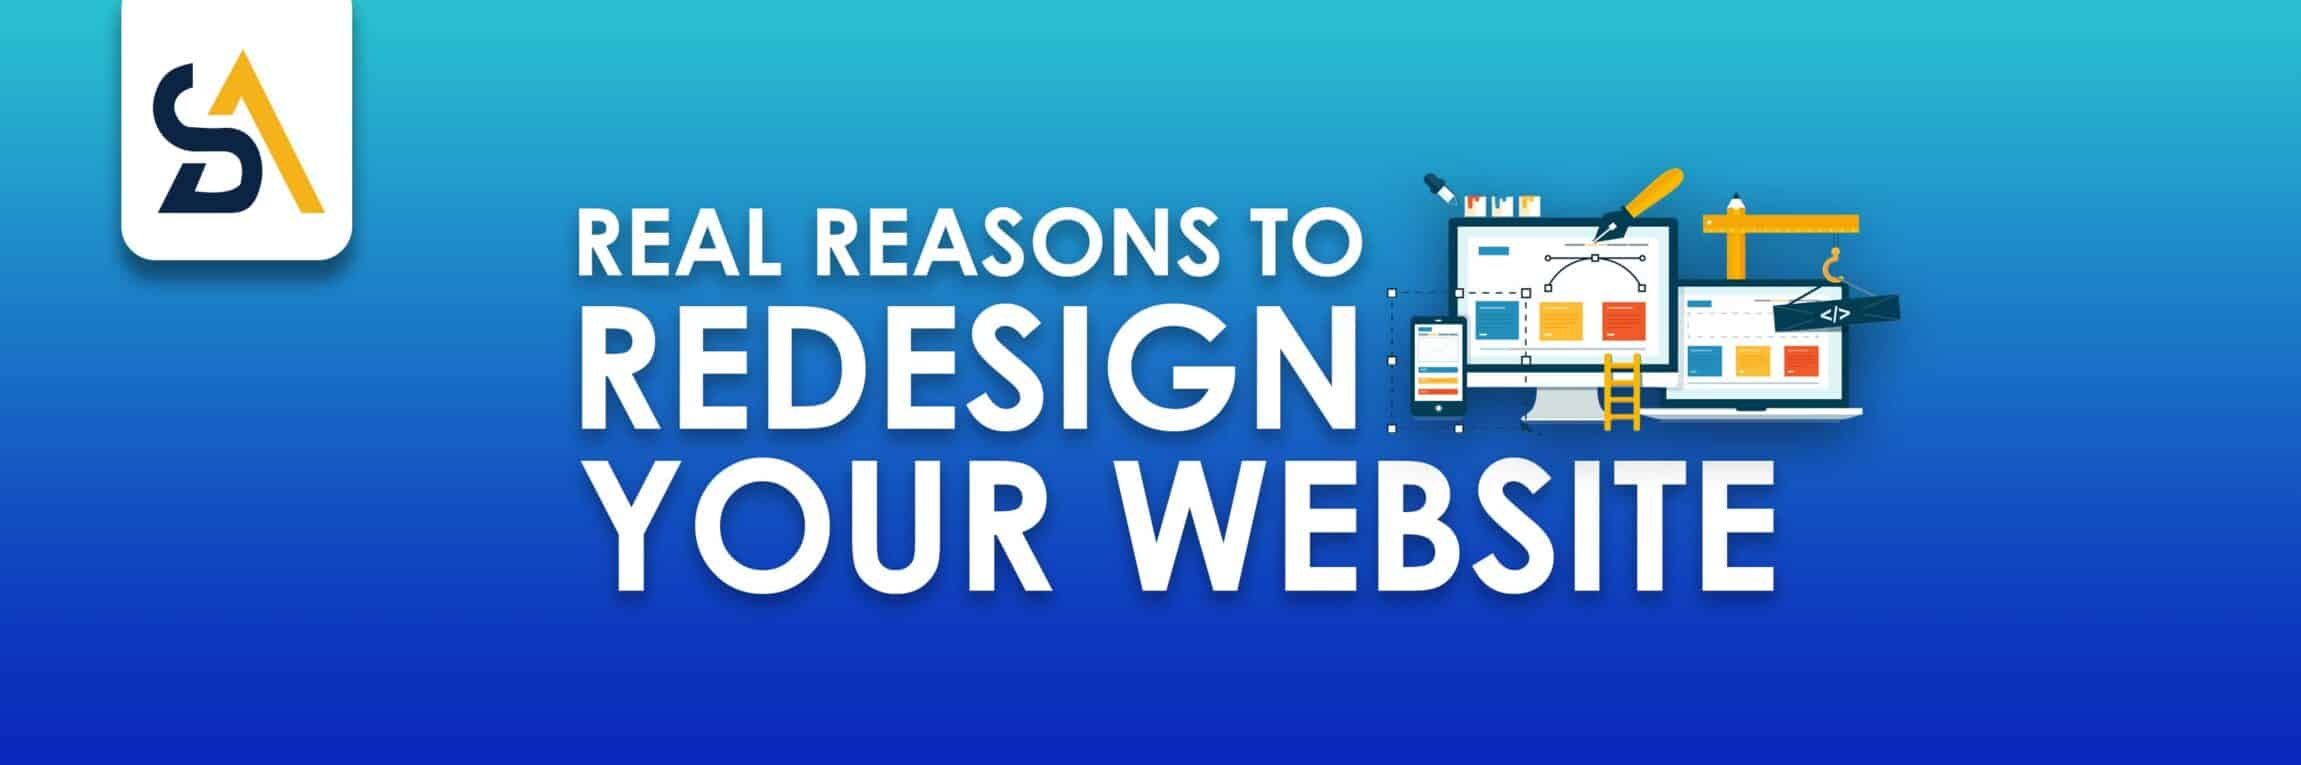 Real Reasons to Redesign your website